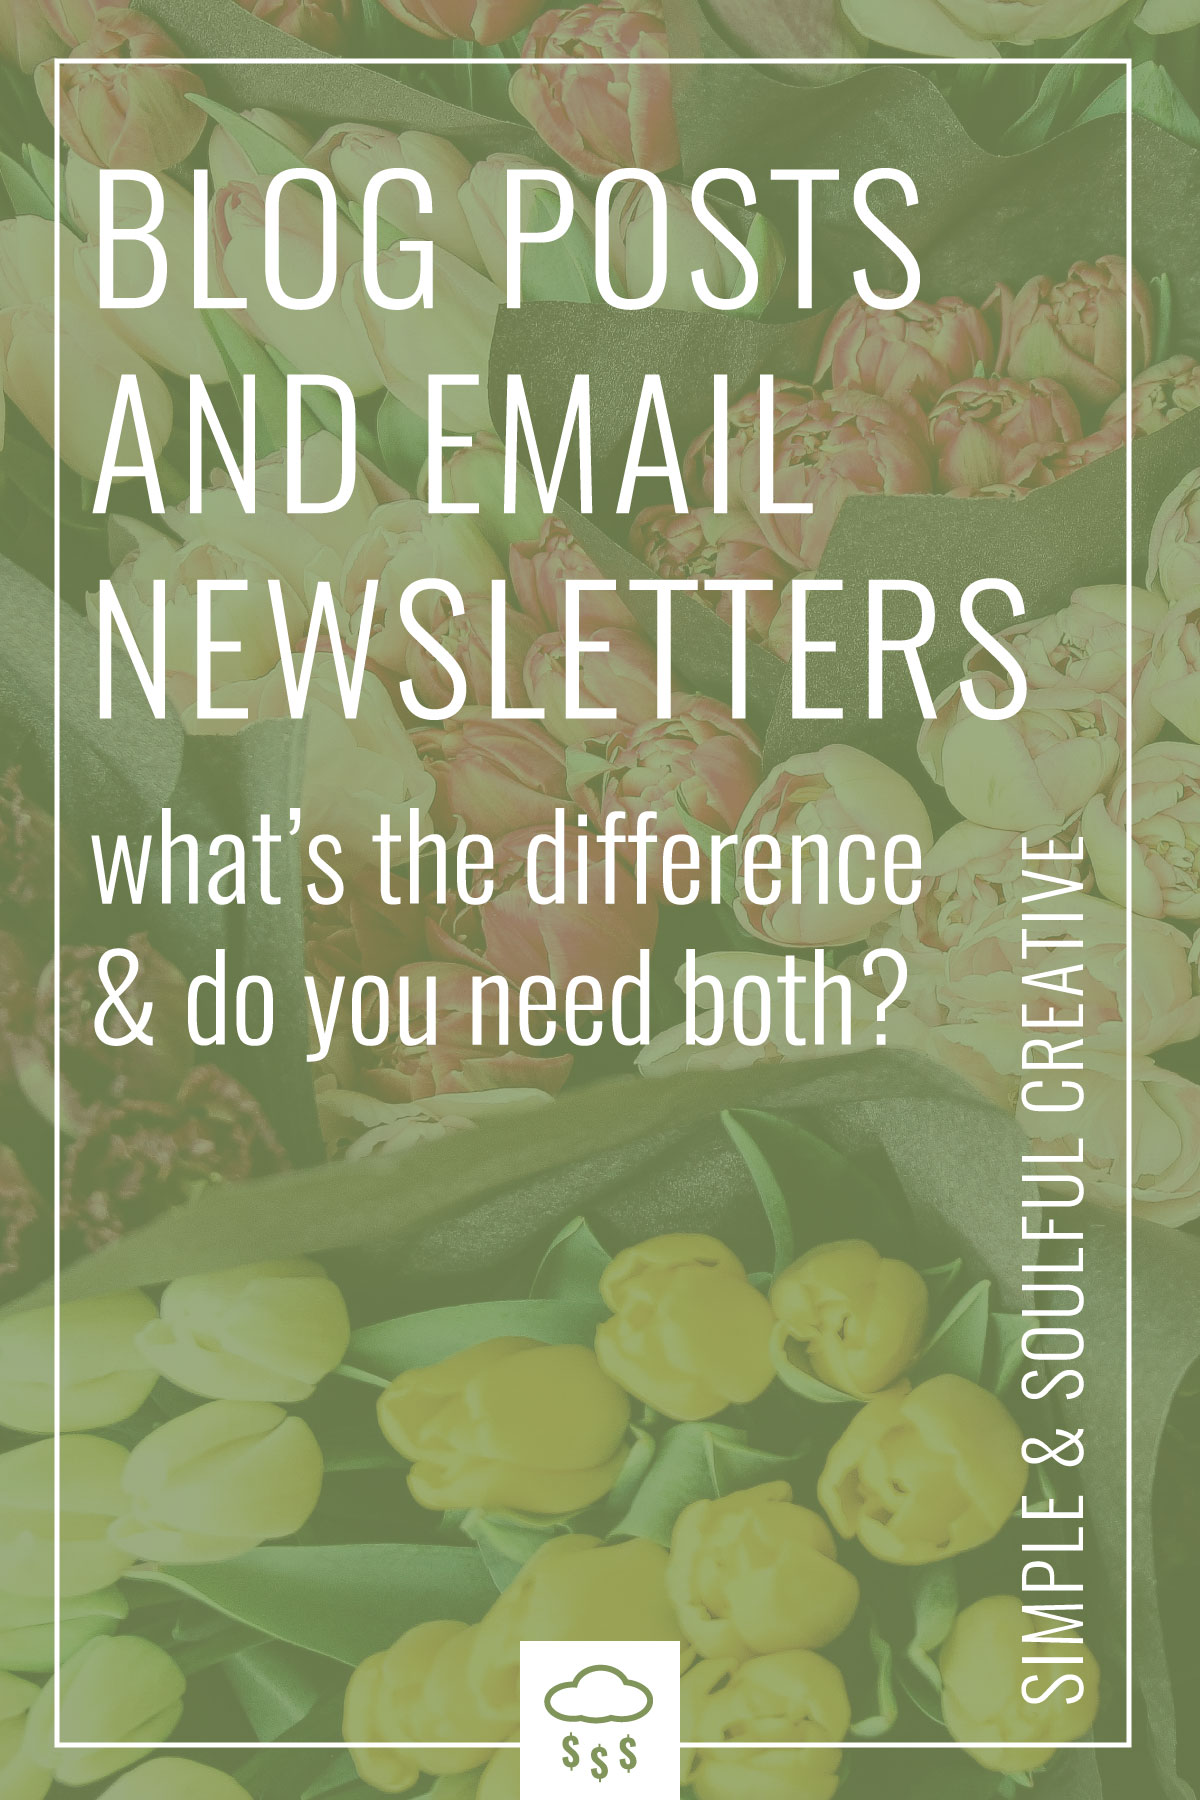 If you're a small business owner and you've been writing on your blog but haven't been sending email newsletters, your content marketing is incomplete. Ready to learn the difference between blog and newsletter content? And why you shouldn't have one without the other?